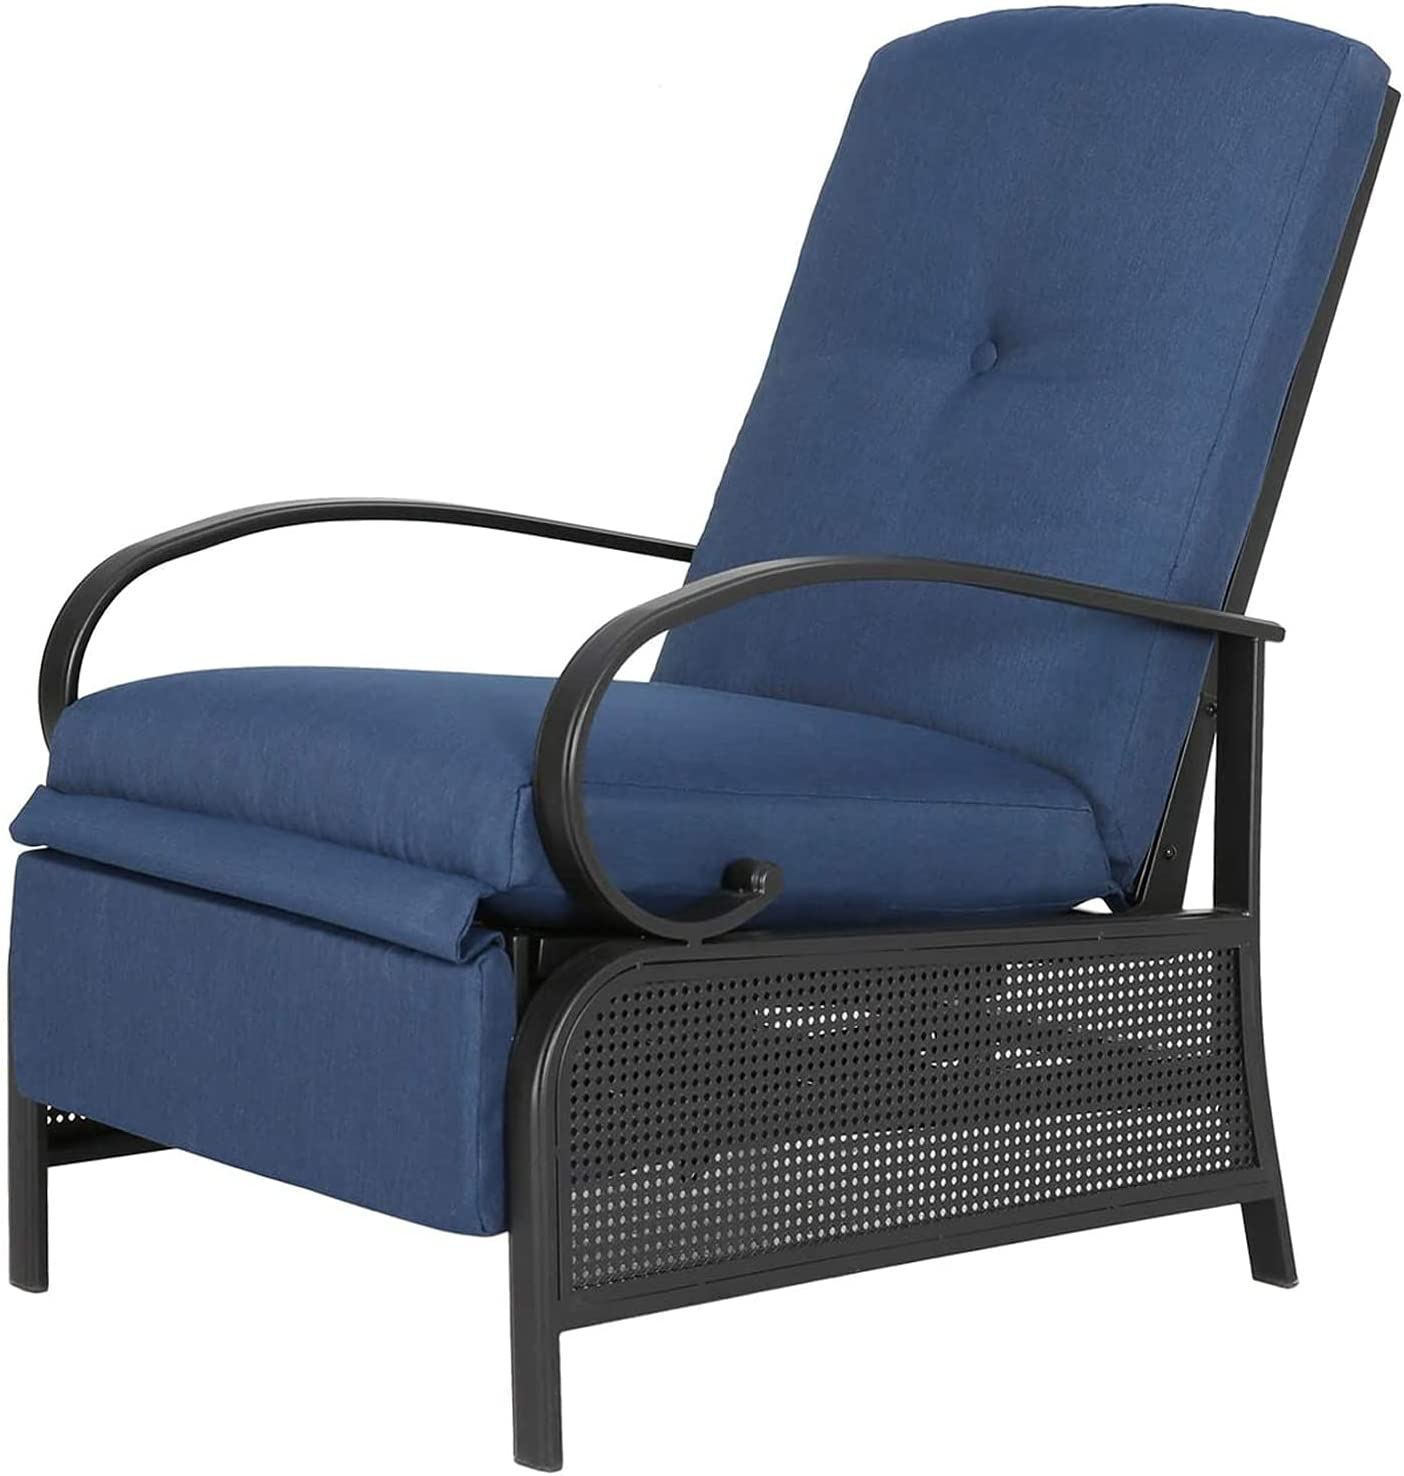 Patio Tree Outdoor Recliner Reclining Chair Limited time Max 63% OFF for free shipping Lou Adjustable